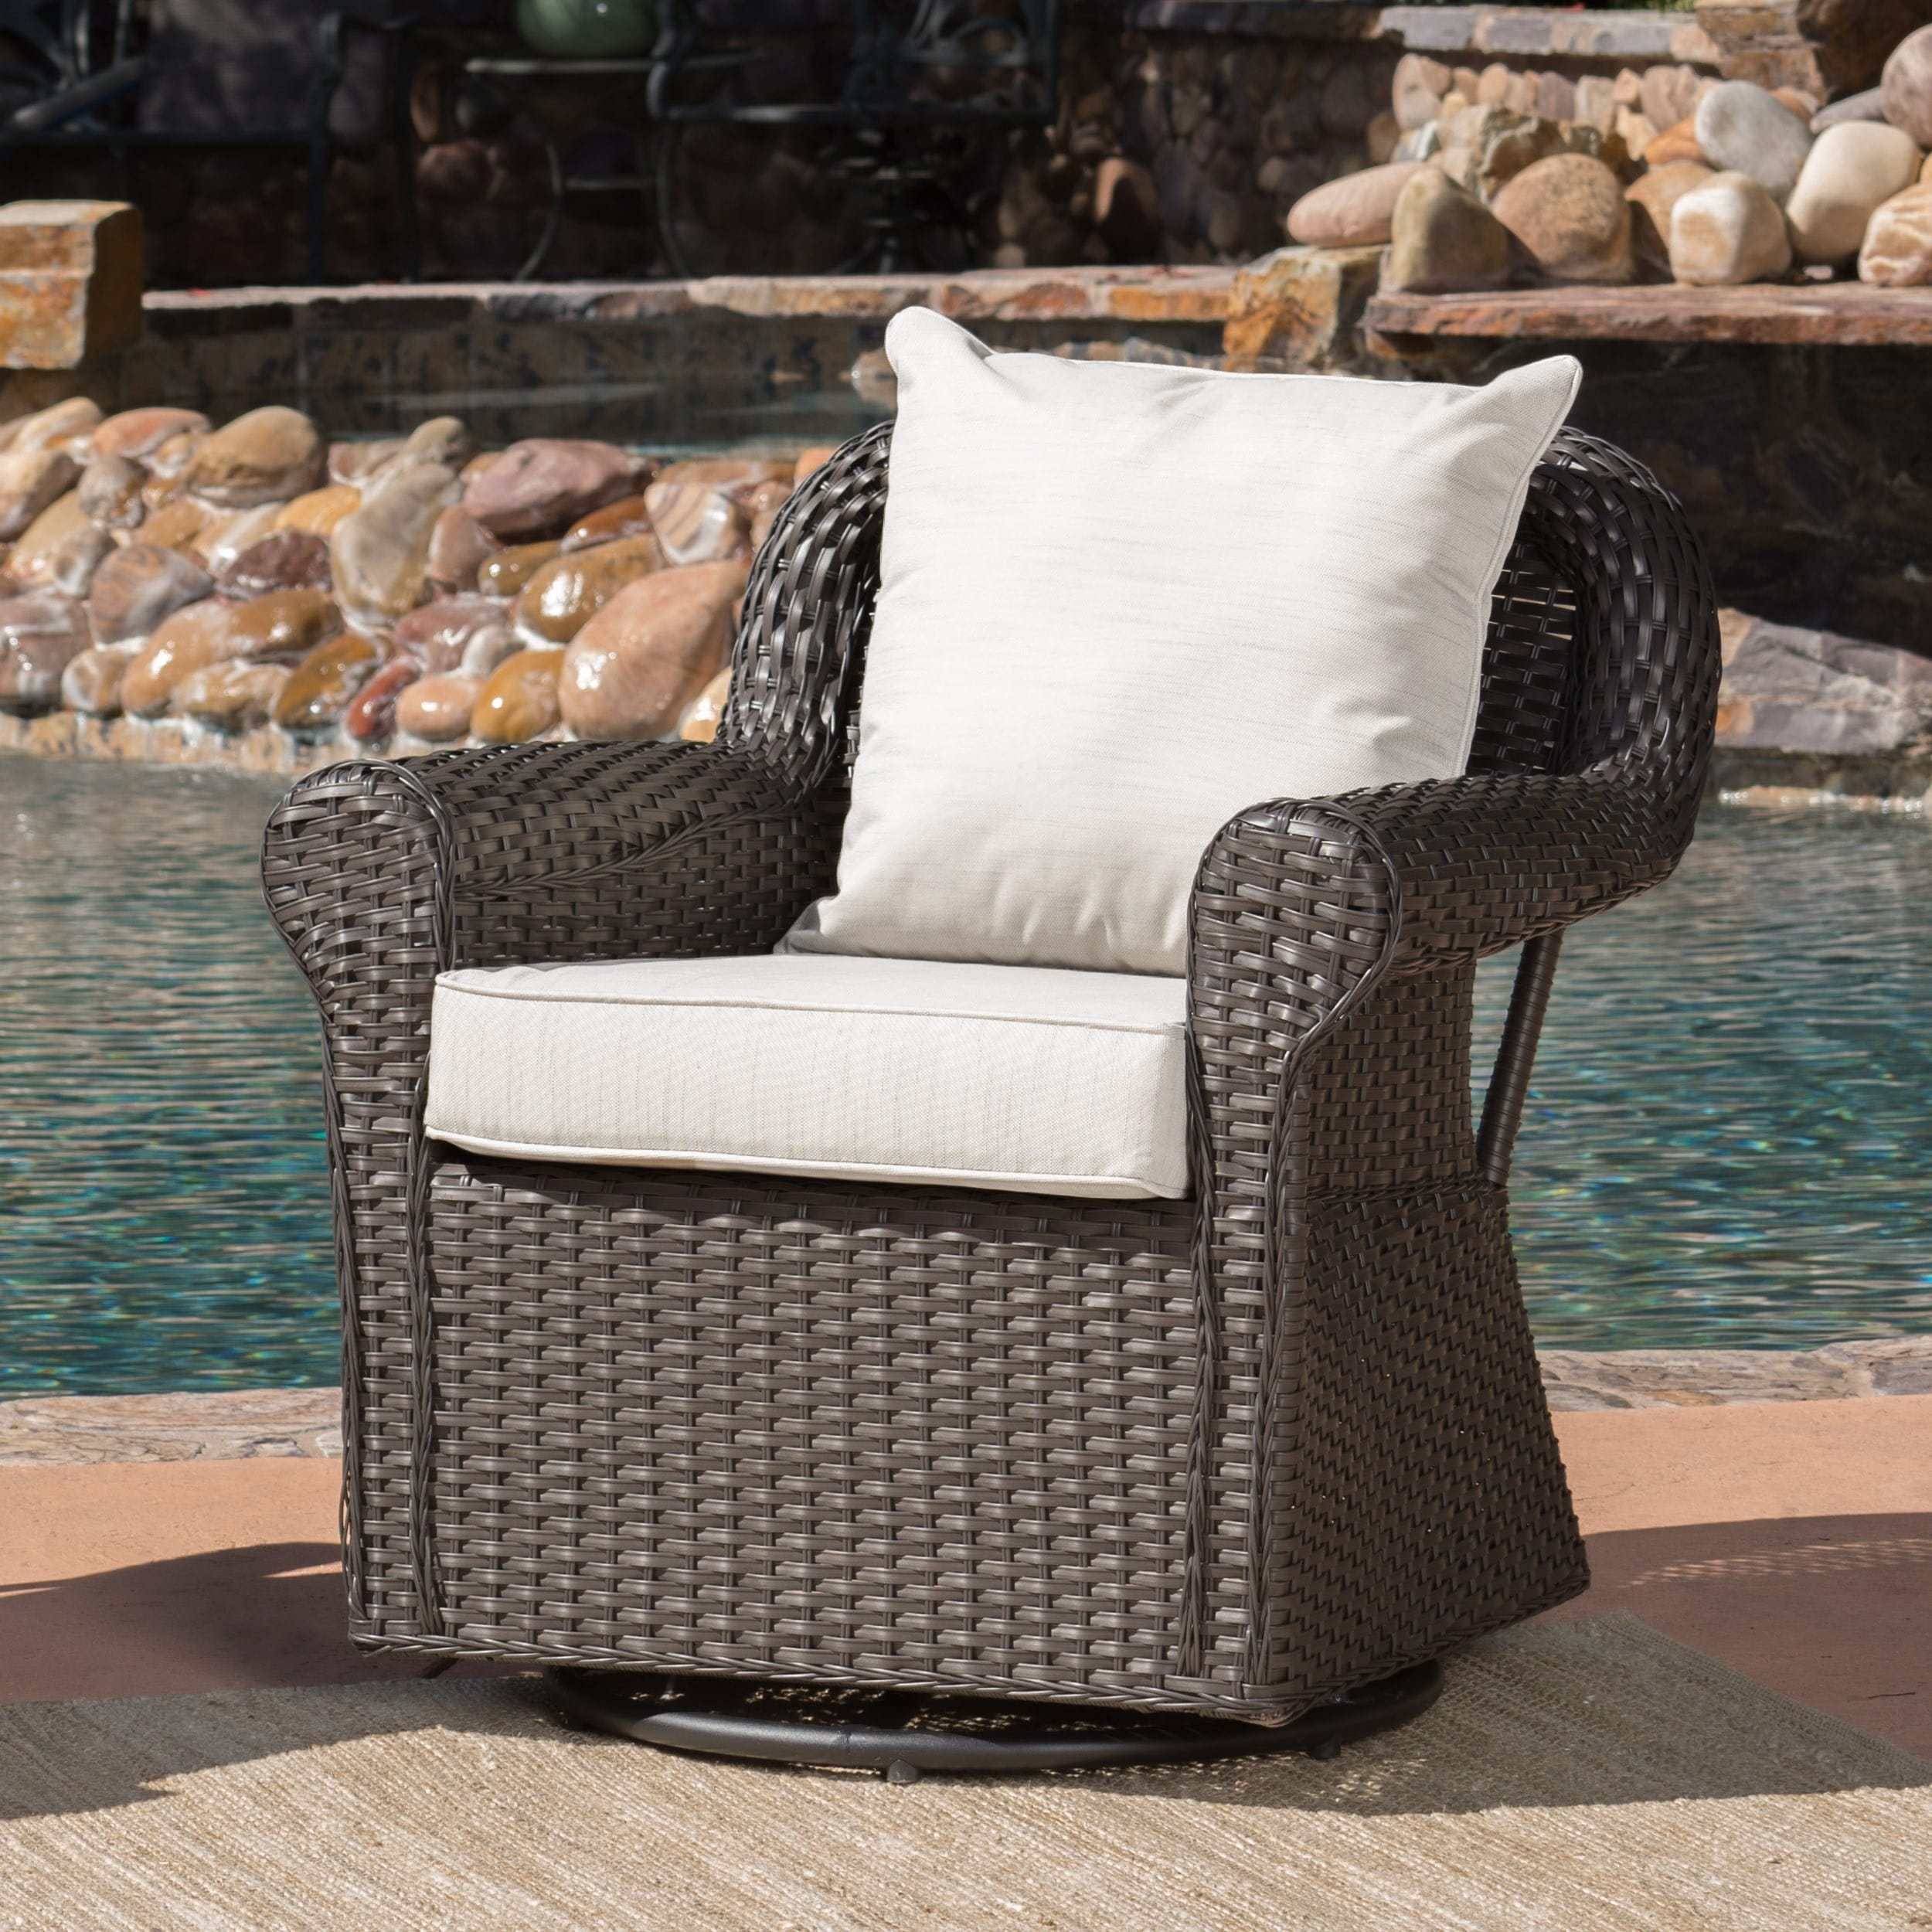 Amaya Outdoor Wicker Swivel Rocking Chair with Cushion by...